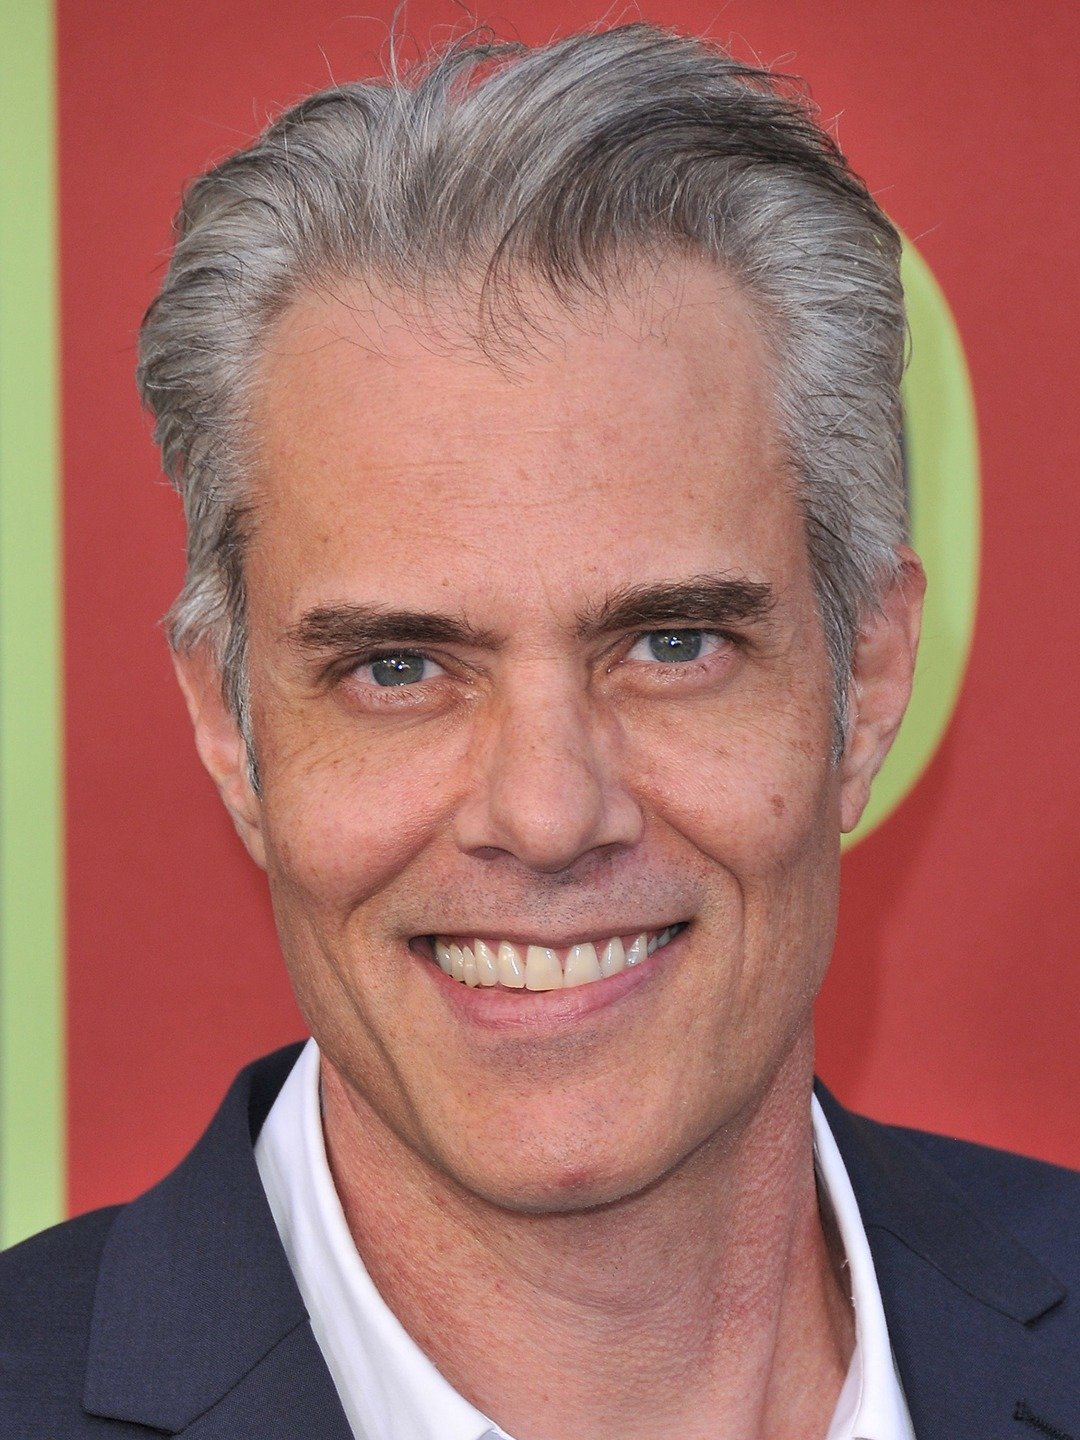 Jed Talks To Dana Ashbrook Twin Peaks Post Pop Podcasts This is the official fan page for one of the actors in the groundbreaking tv saga twin peaks.a. jed talks to dana ashbrook twin peaks post pop podcasts